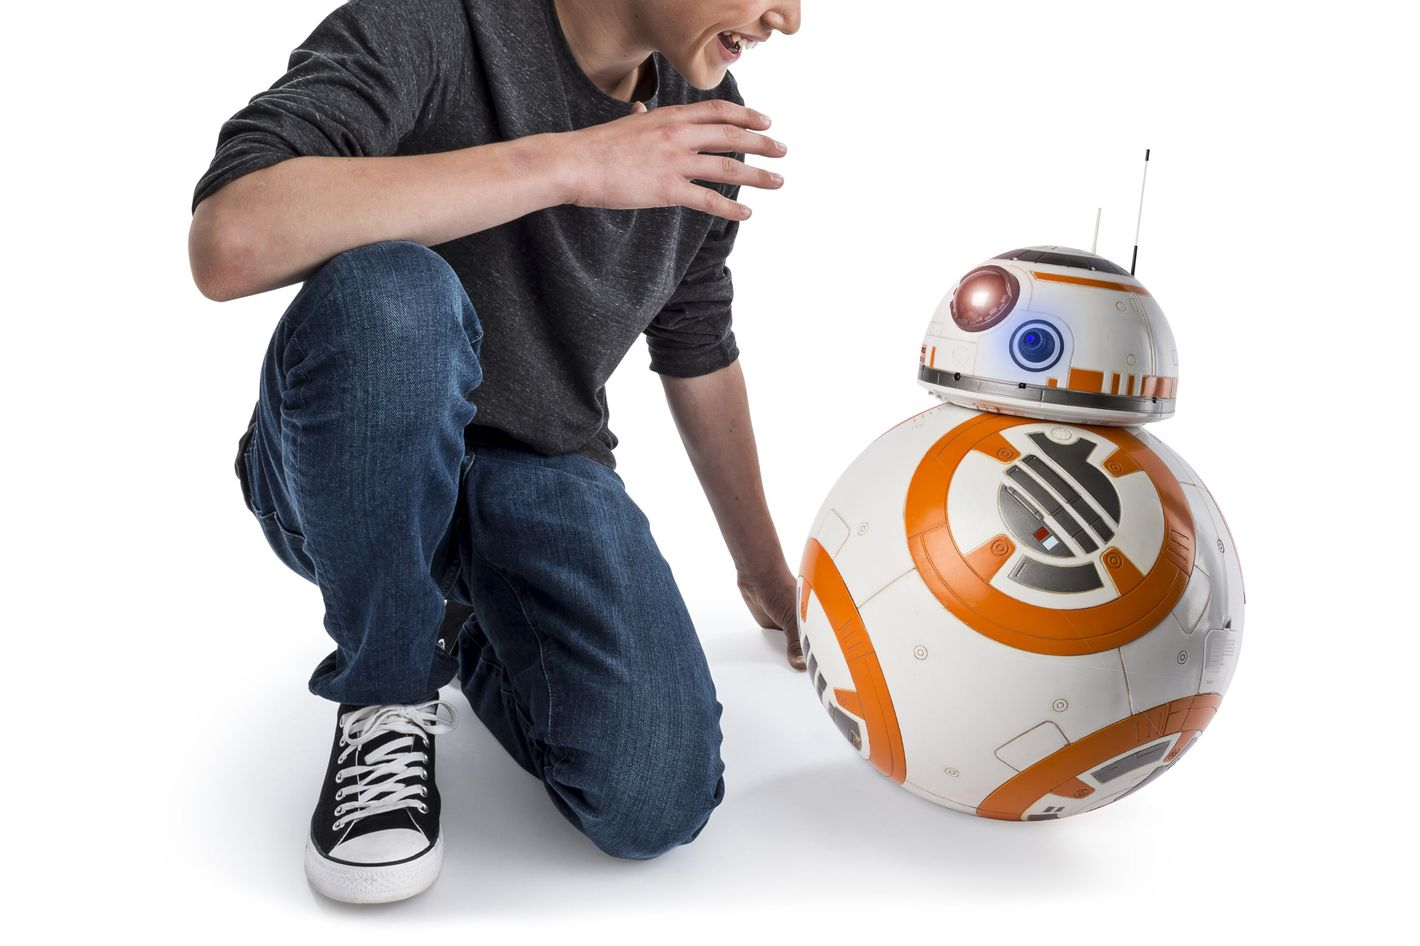 Star Wars Hero Droid BB-8